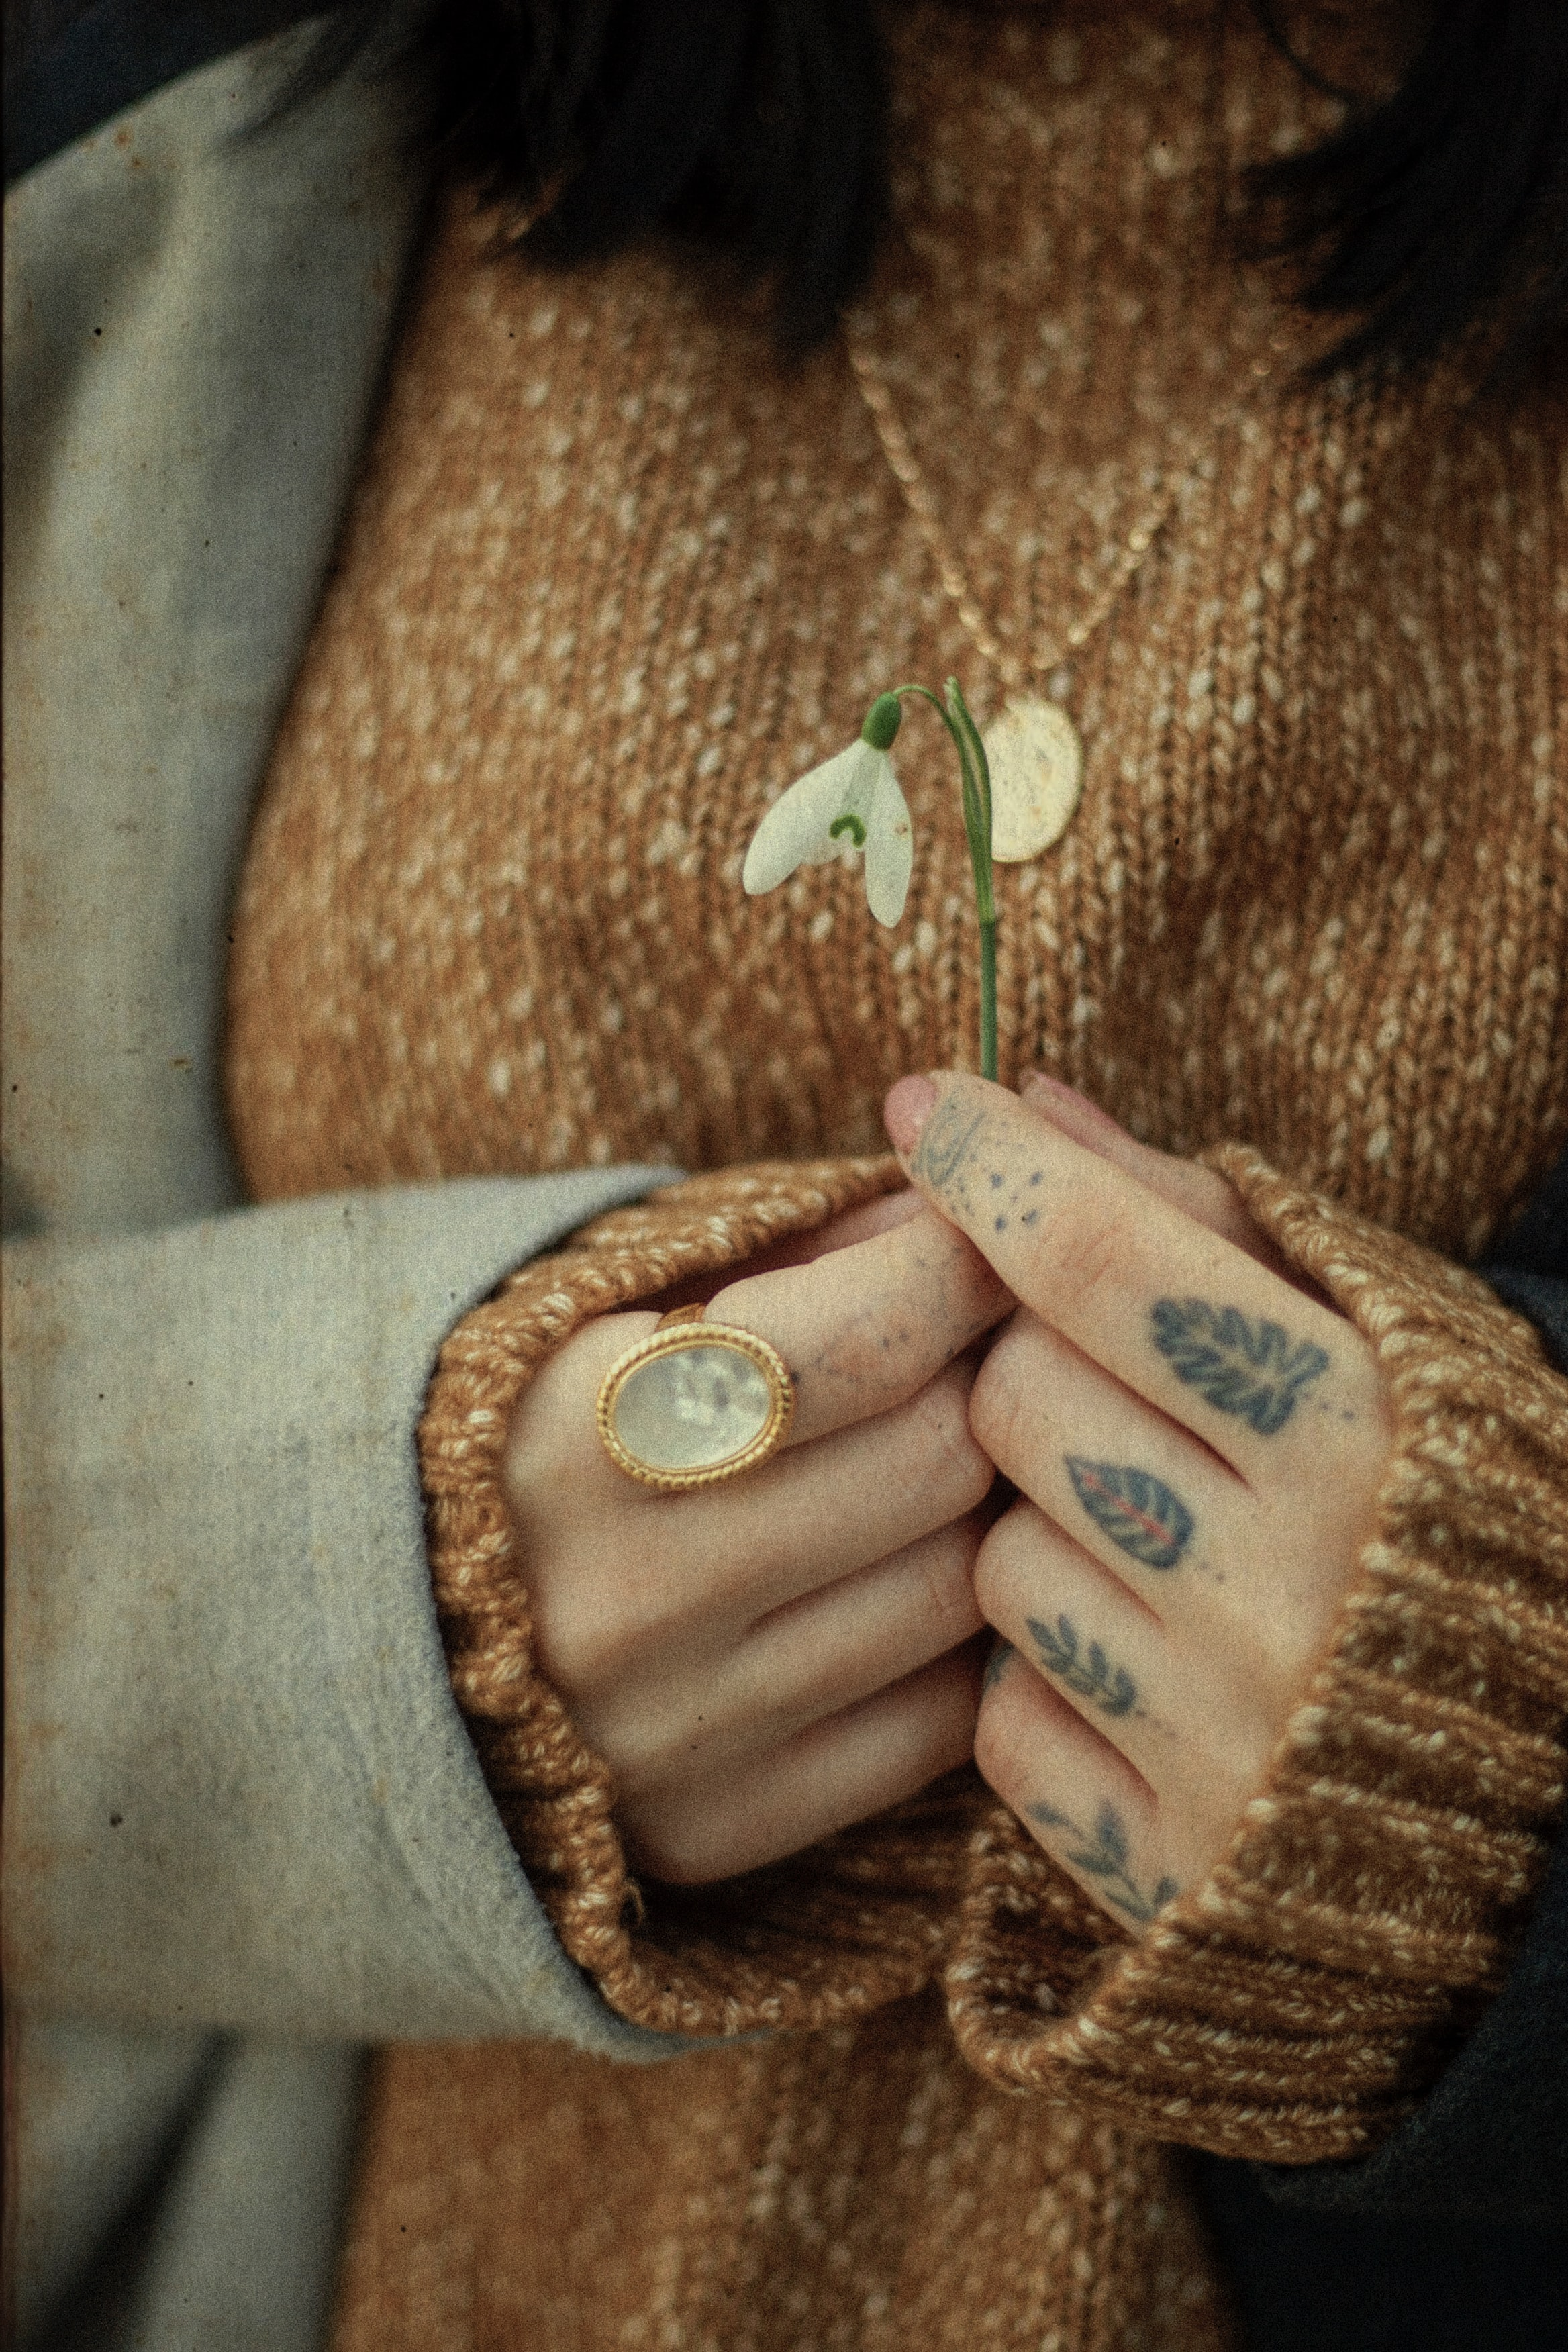 144589 download wallpaper Rings, Flower, Miscellanea, Miscellaneous, Hands, Tattoo screensavers and pictures for free